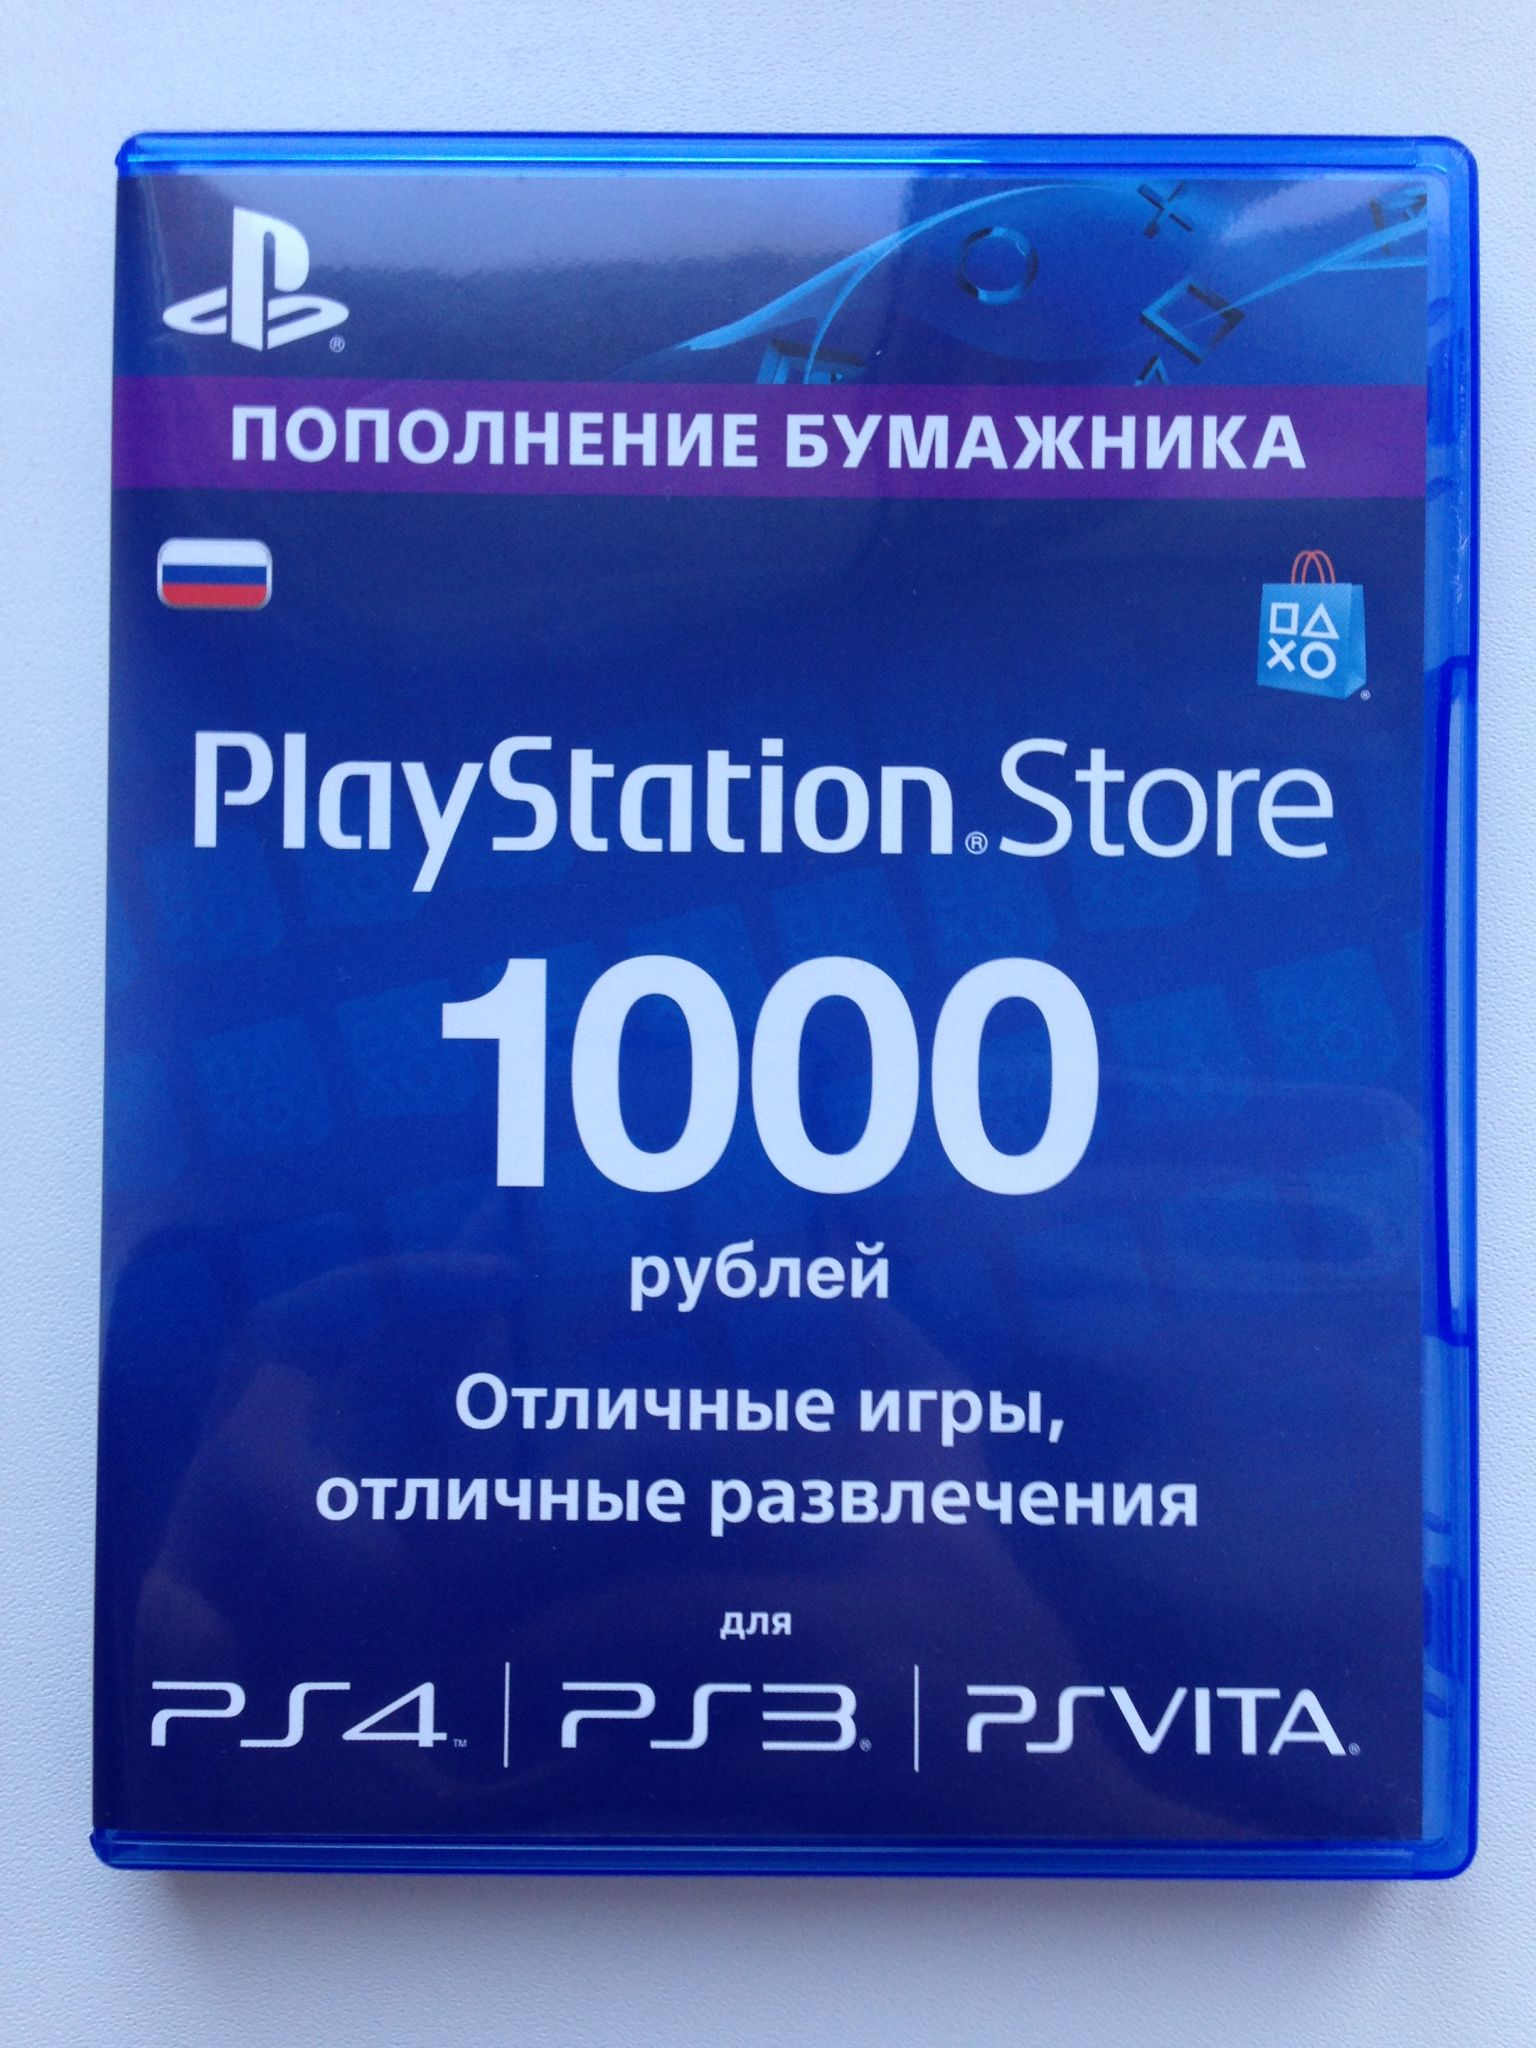 PSN PlayStation Network Card 1000 ruble (RUS)